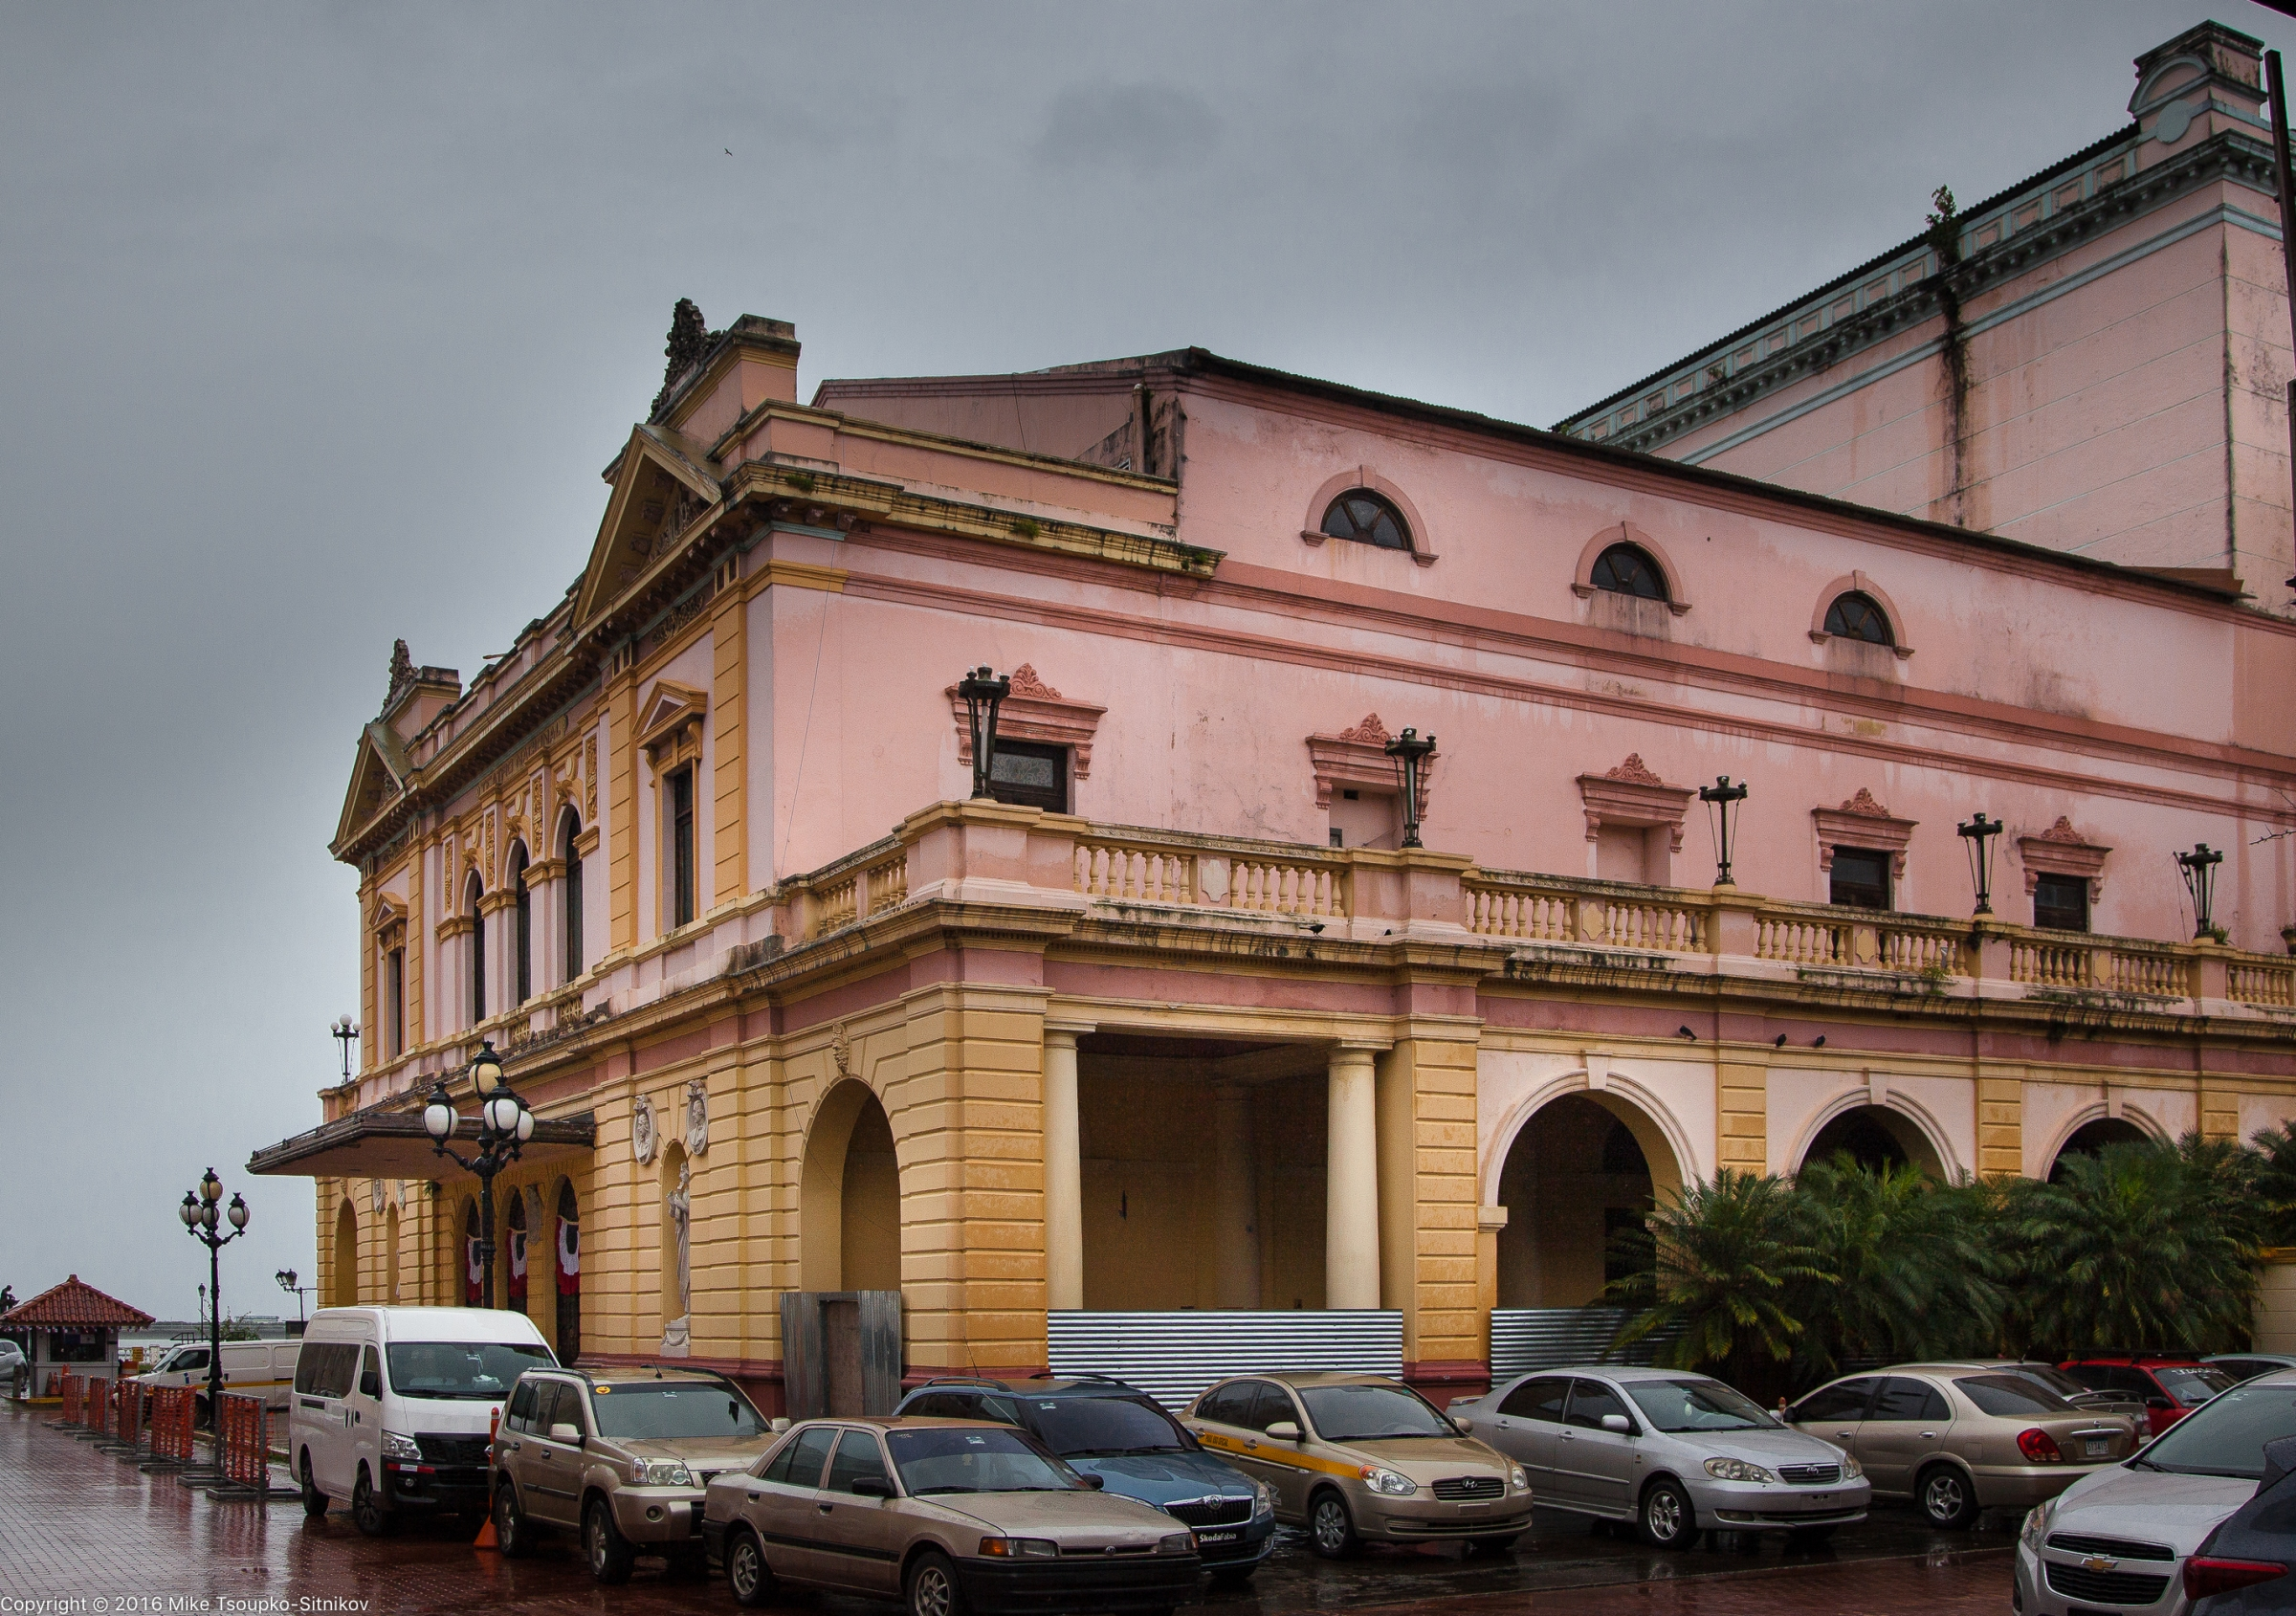 Panama City: the National Theater